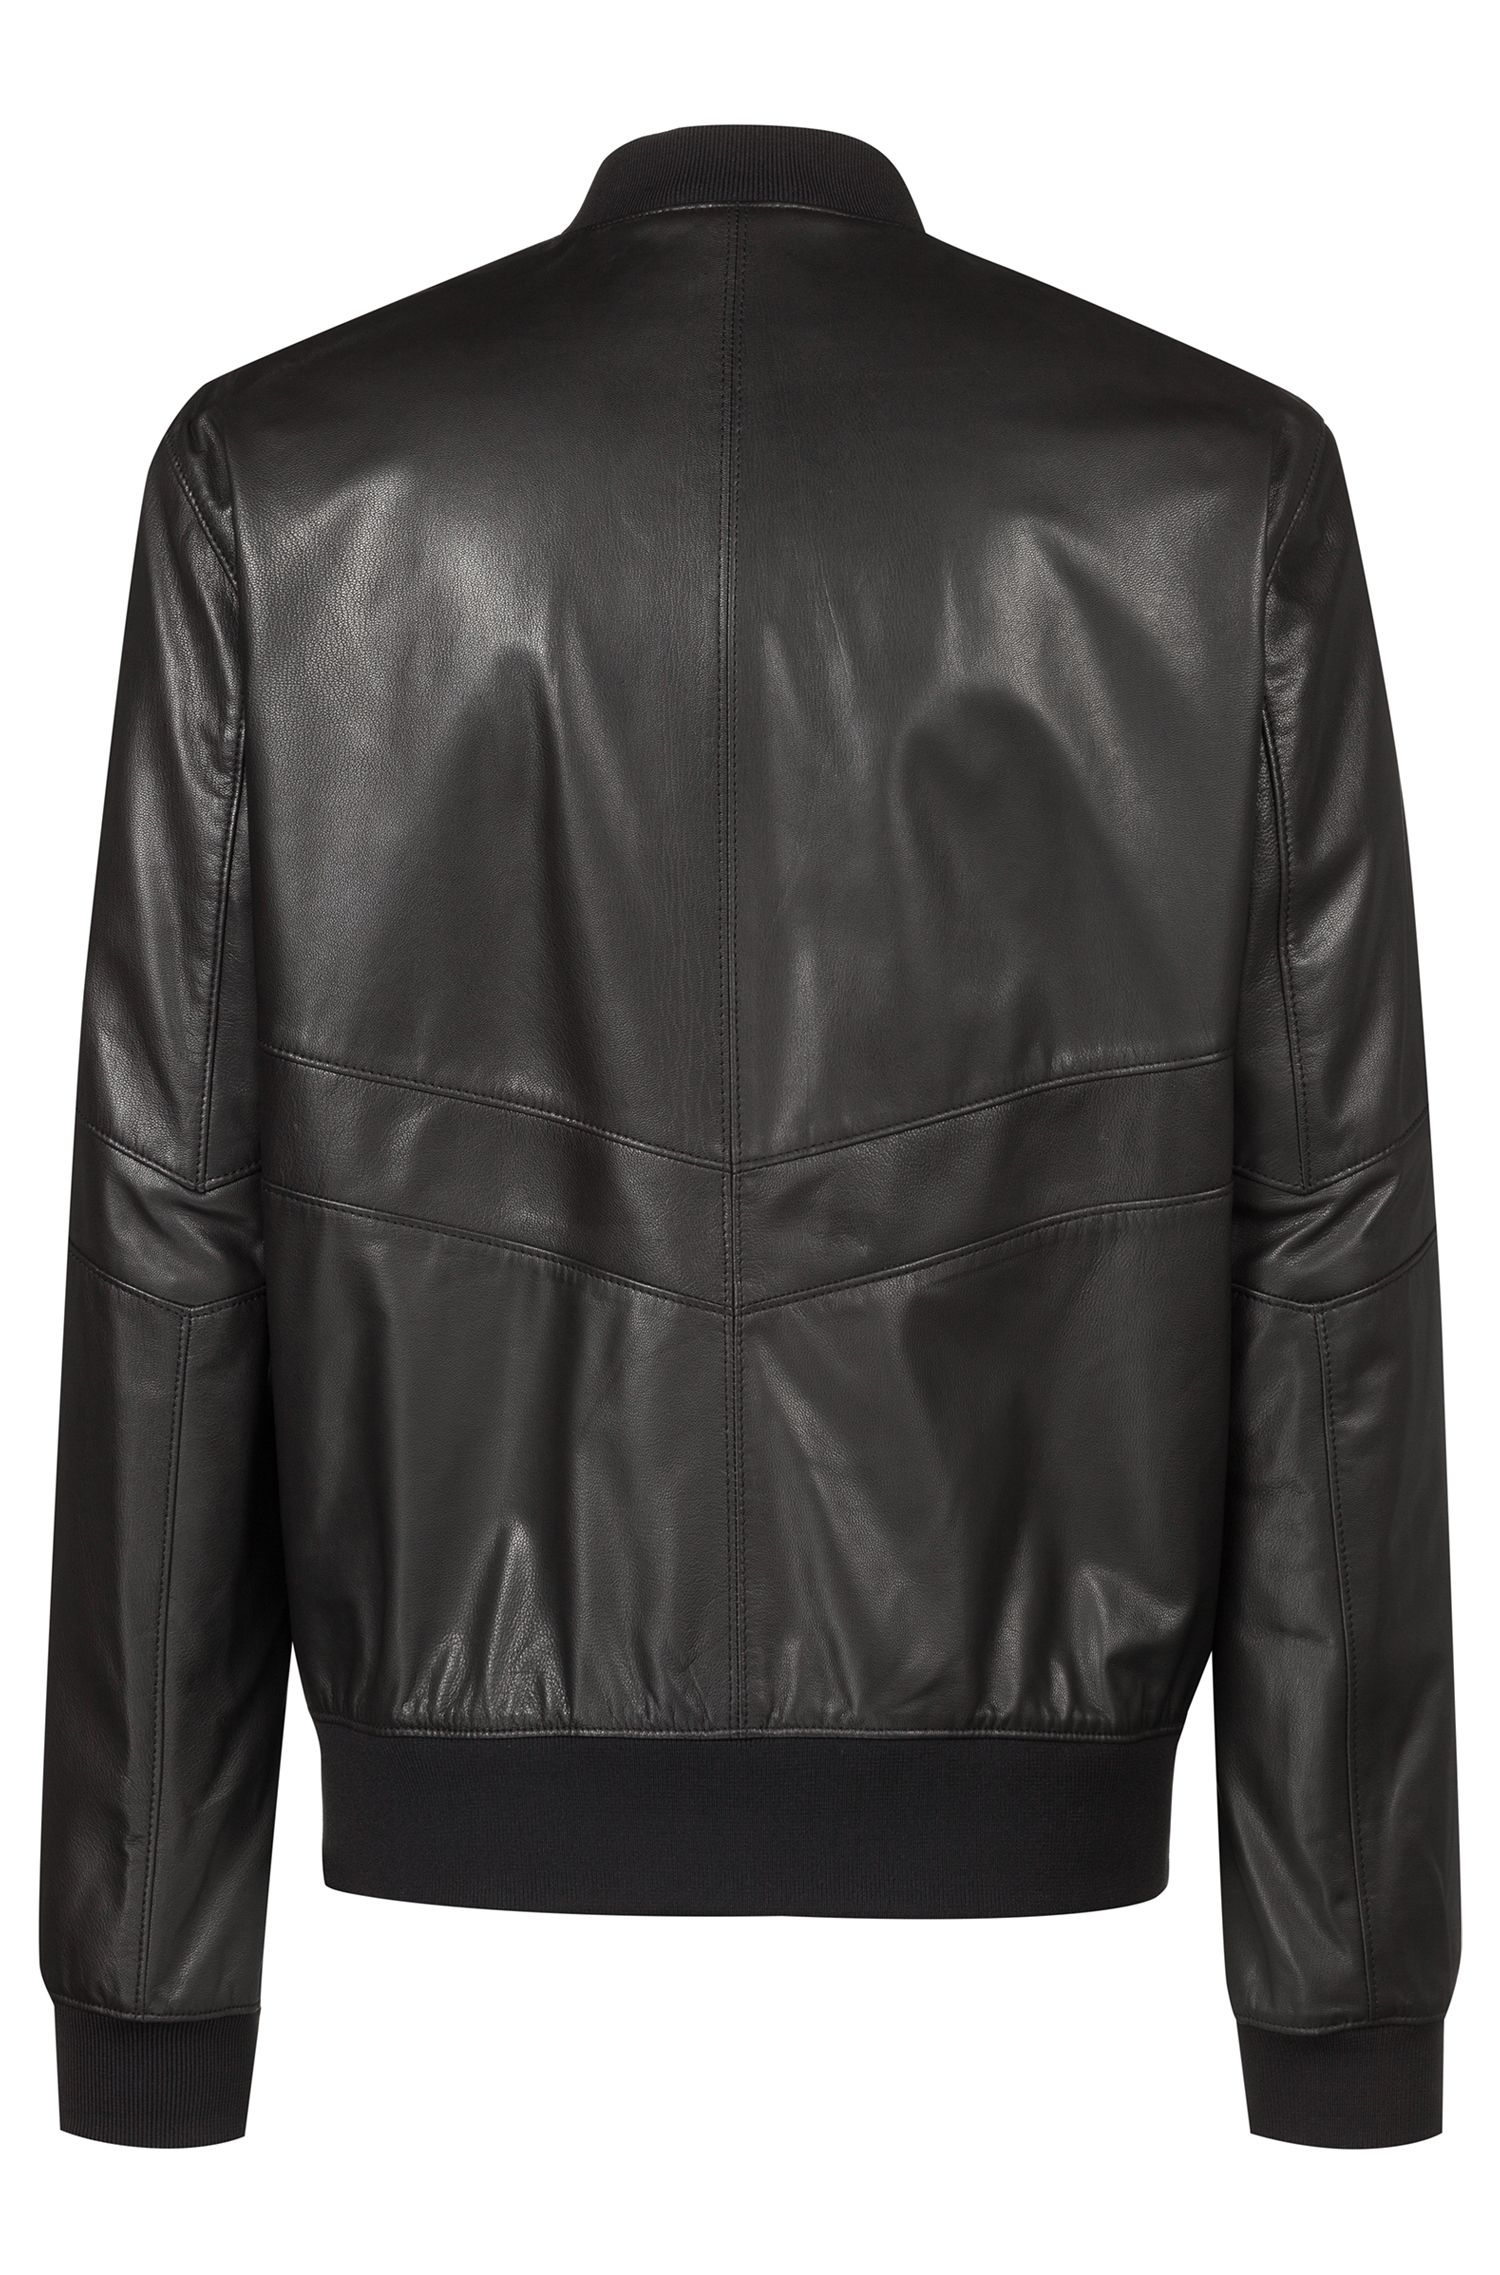 Regular-fit leather bomber jacket in nappa leather, Black